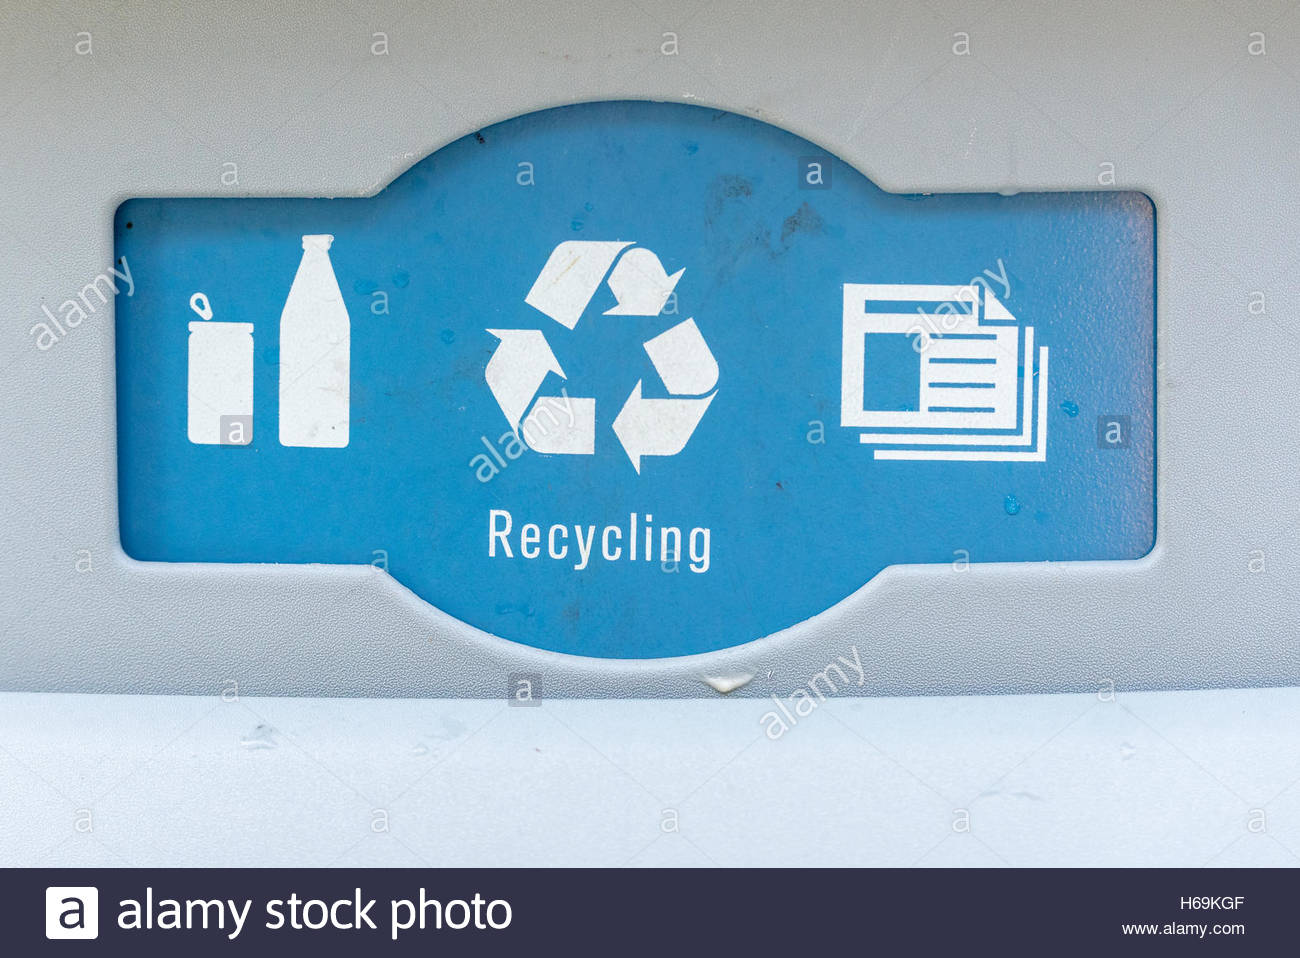 Different recycling symbols choice image symbol and sign ideas recycling symbol an open slot showing different recycling symbols recycling symbol an open slot showing different buycottarizona Choice Image